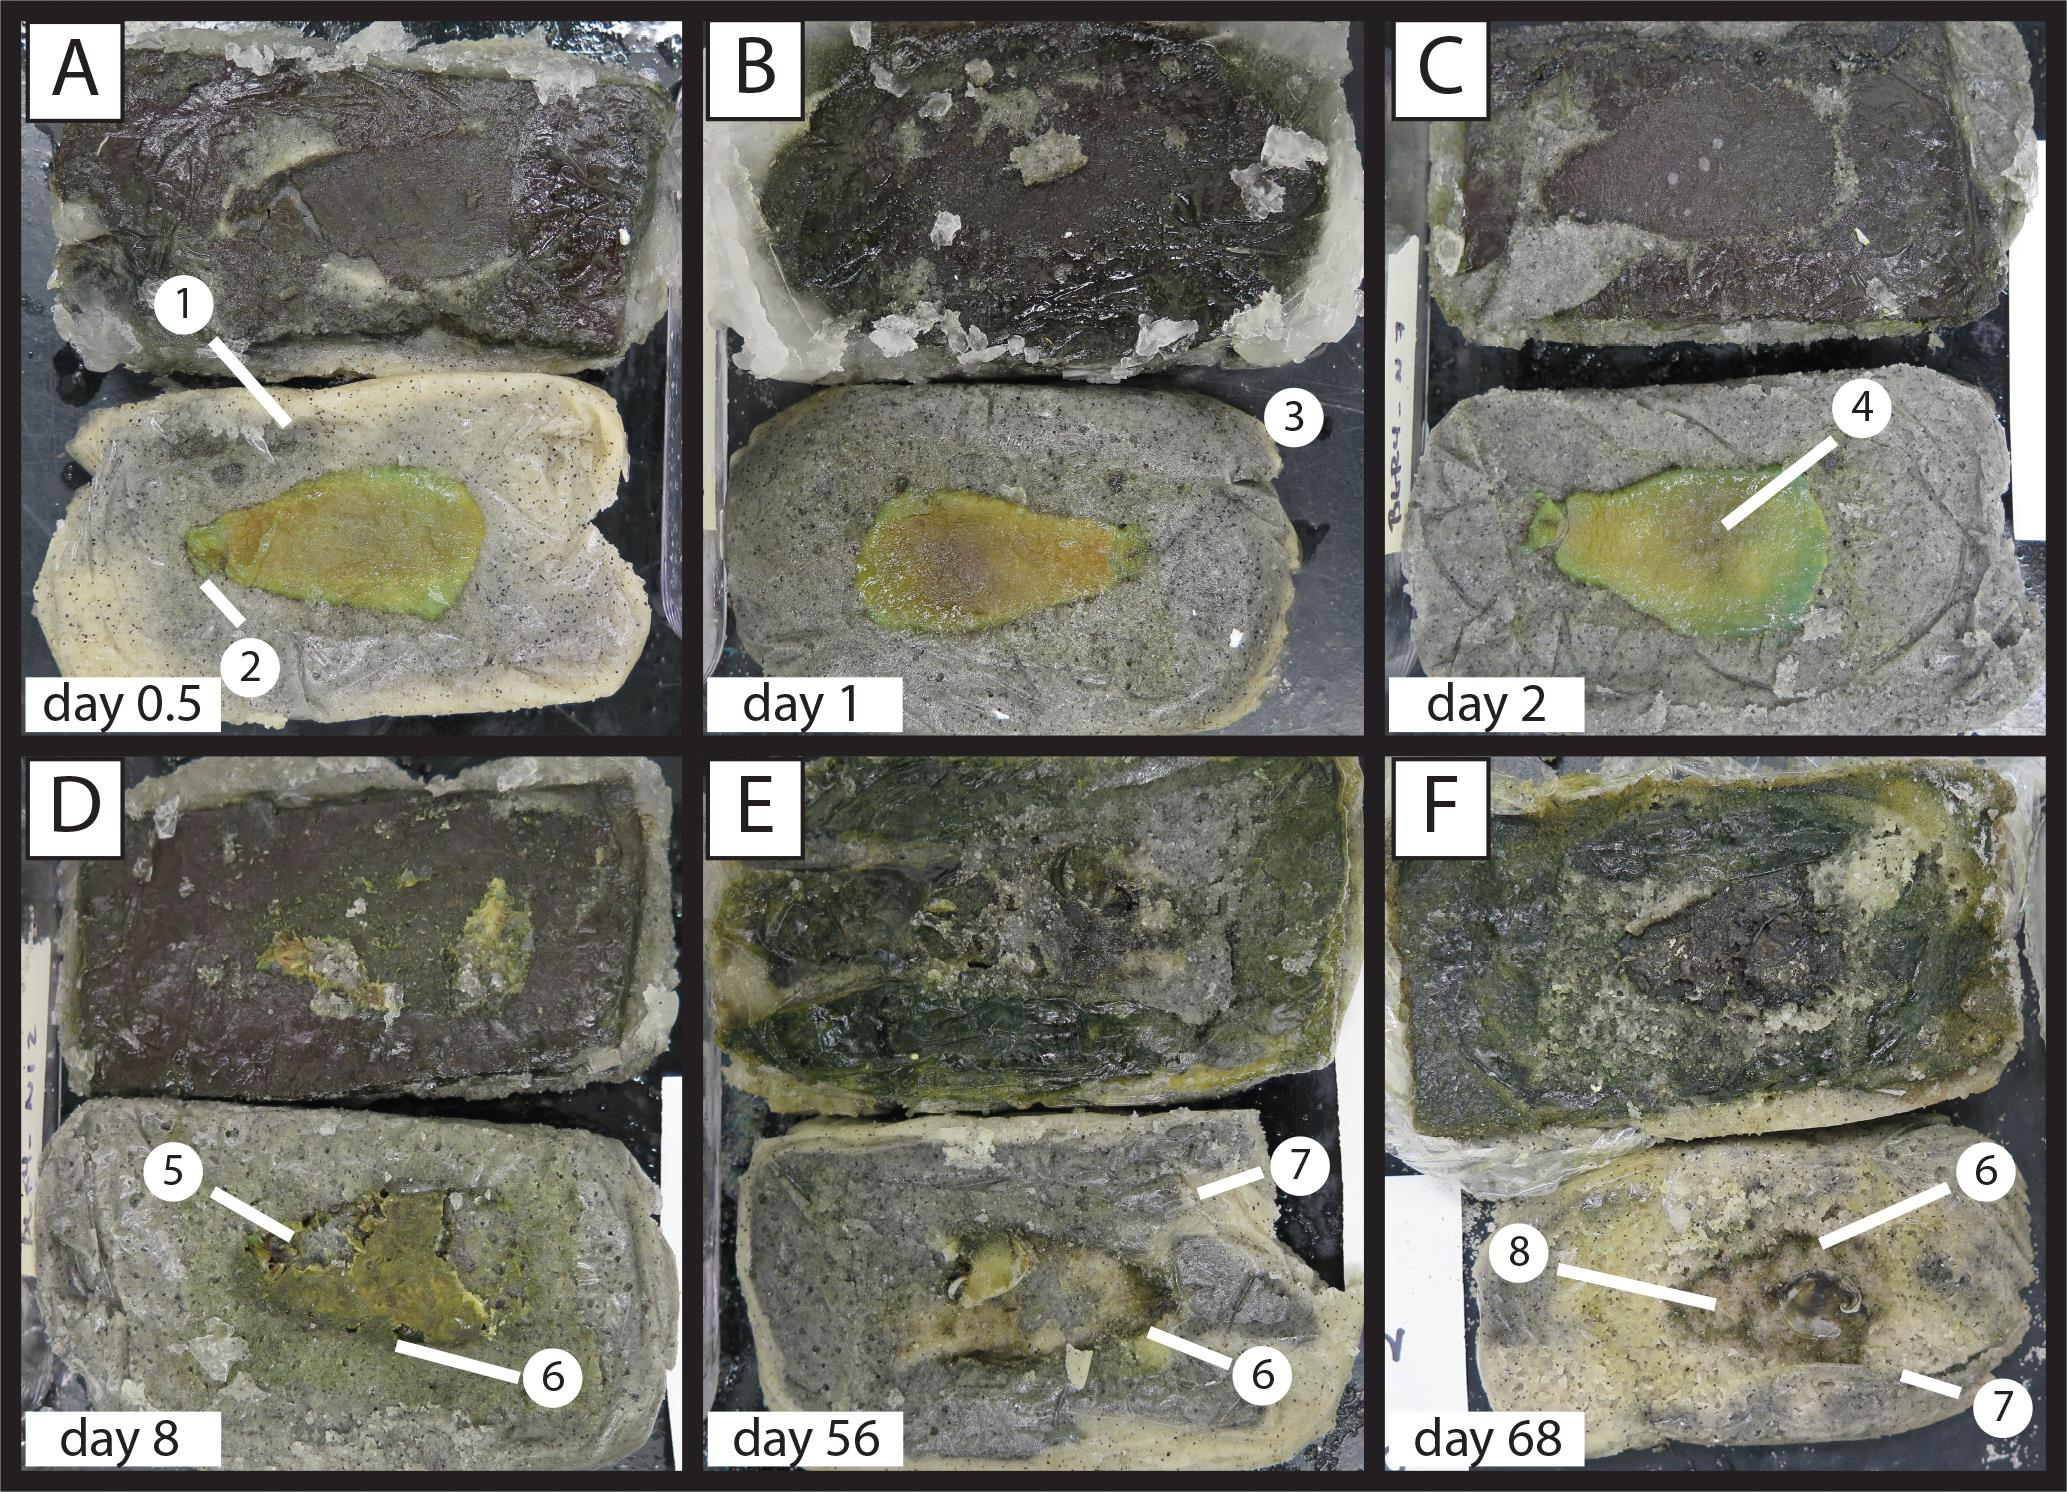 EDIACARAN-STYLE DECAY EXPERIMENTS USING MOLLUSKS AND SEA ANEMONES